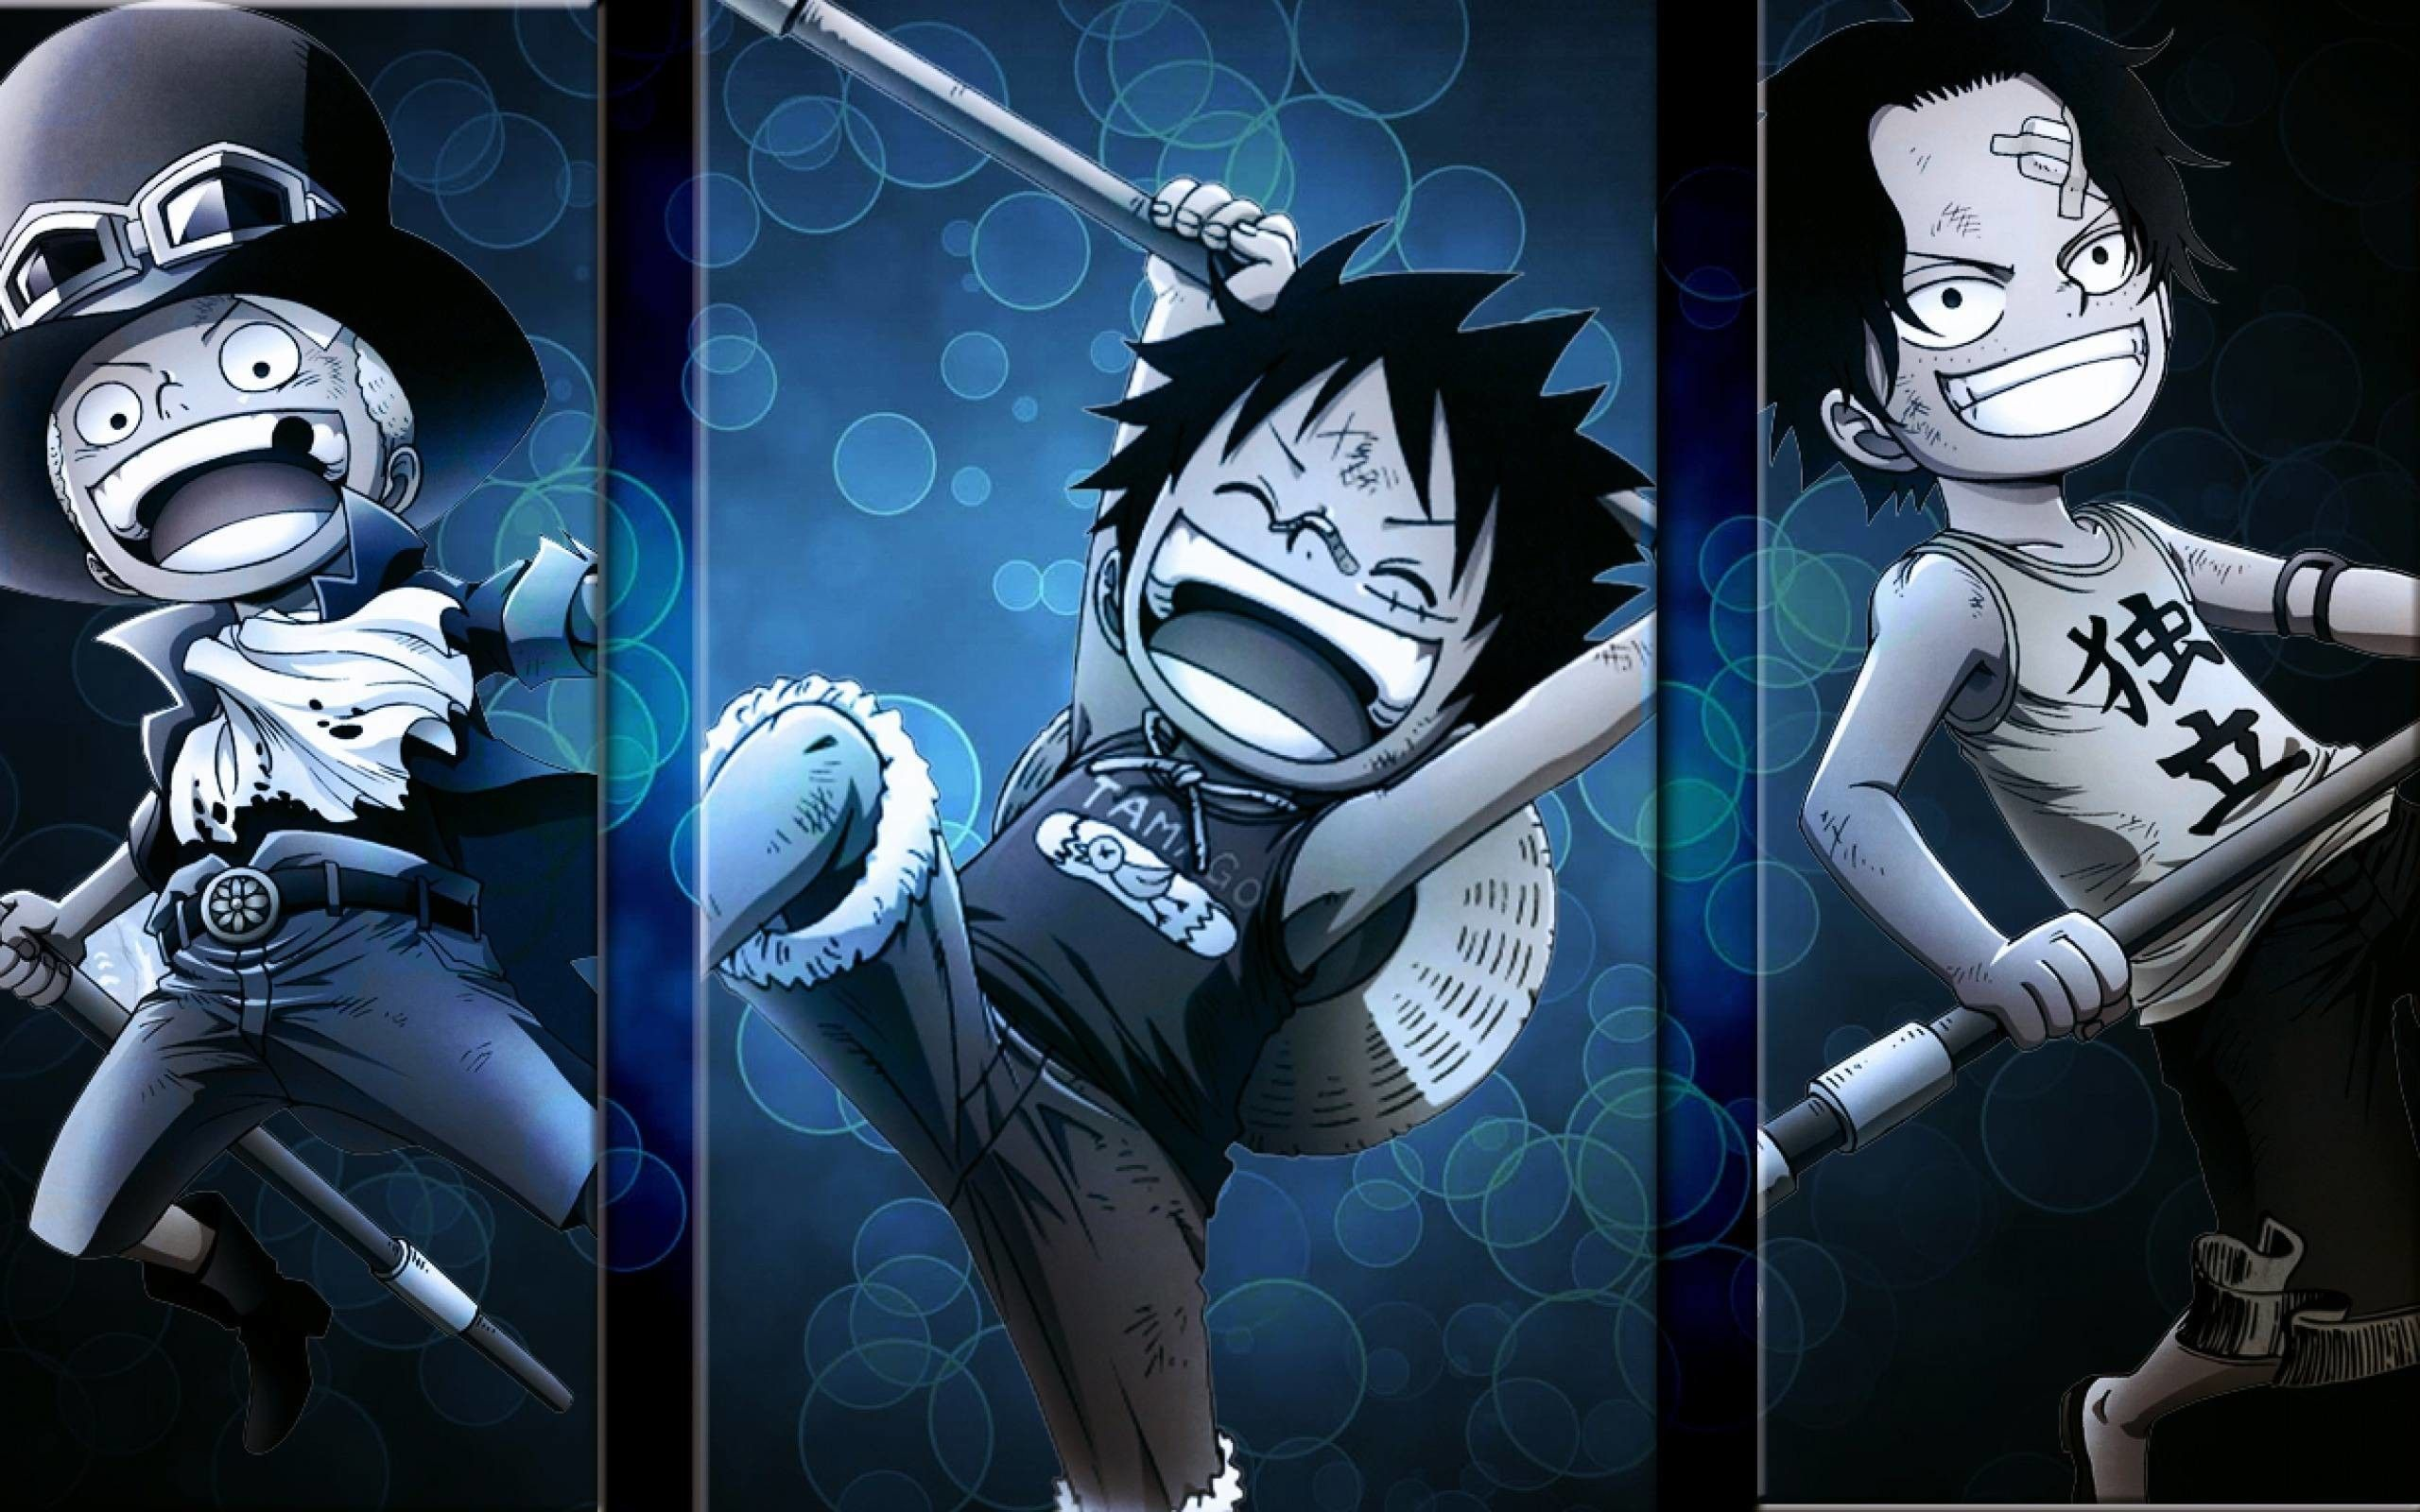 Wallpaper One Piece 3d Hd Android Android Wallpaper Anime Pieces Wallpaper Anime Wallpaper